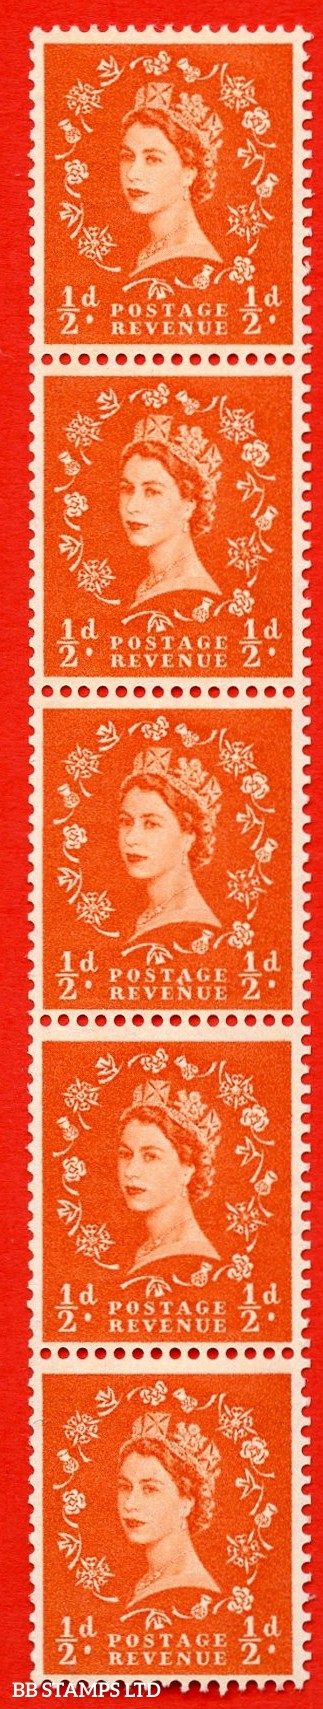 "SG. 570. S4k. ½d Orange. A superb UNMOUNTED MINT example. Coil strip of 5. Cream paper. With a ""A"" flaw ERROR. Roll 3 variety."